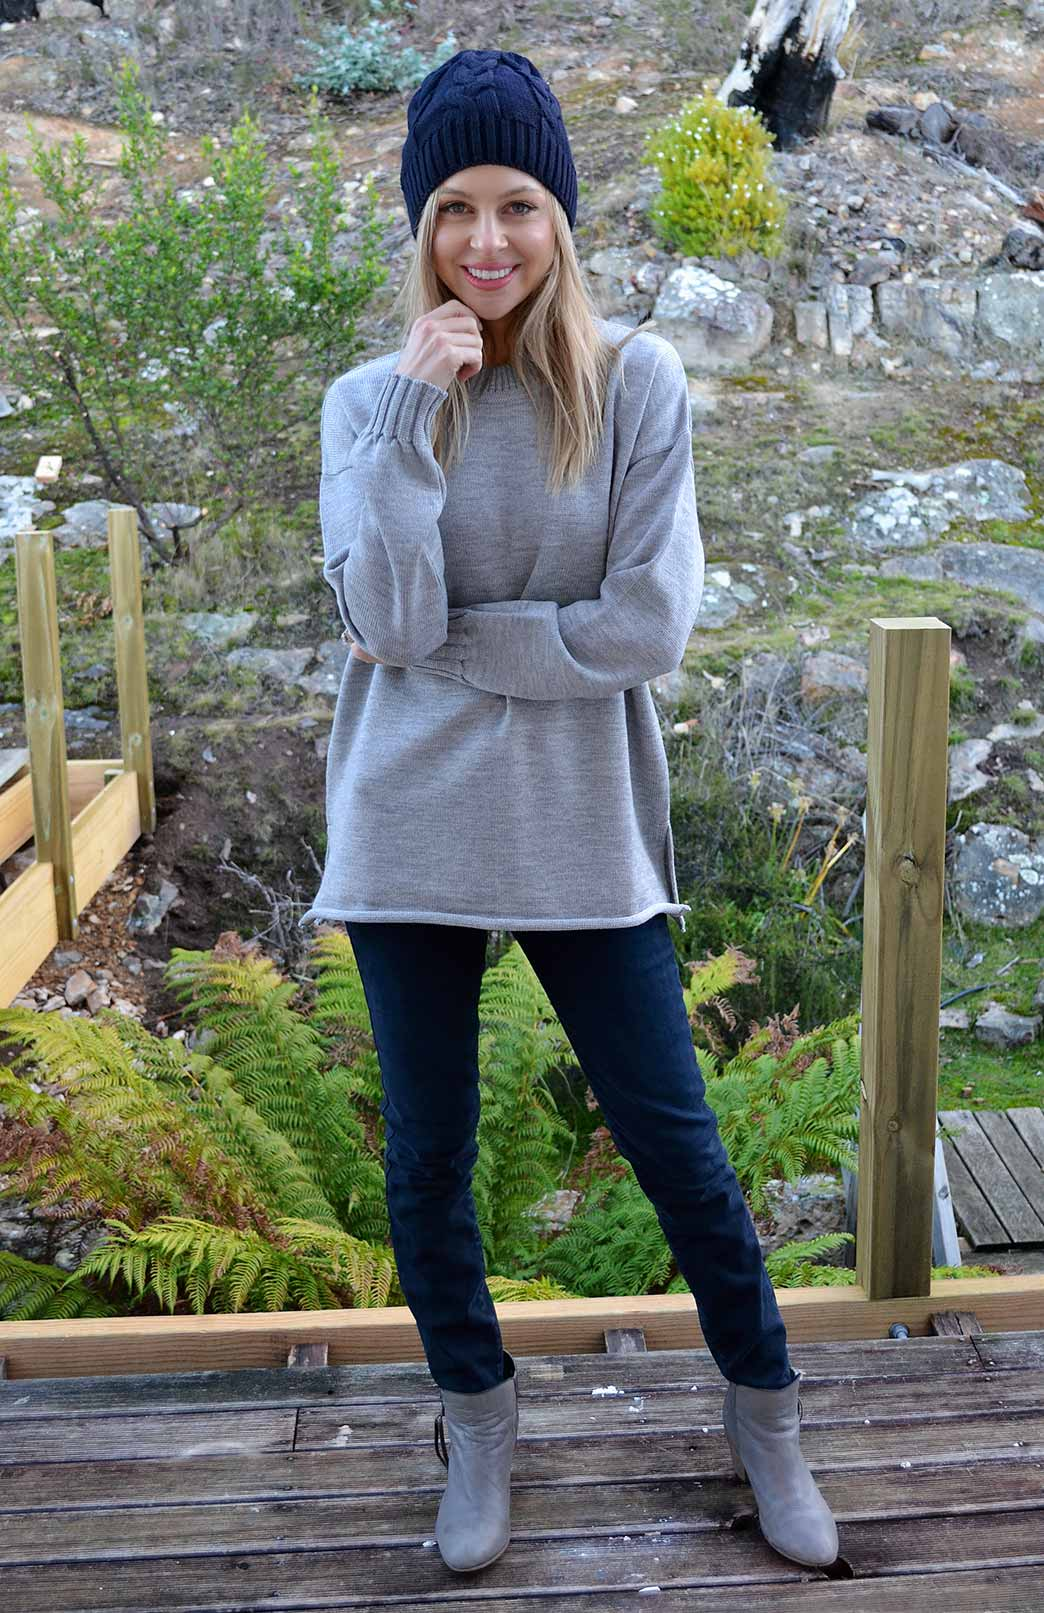 Sloppy Joe Crew Neck Jumper - Women's Pewter Grey Chunky Knit Merino Wool Sloppy Joe Crew Neck Jumper with side splits - Smitten Merino Tasmania Australia